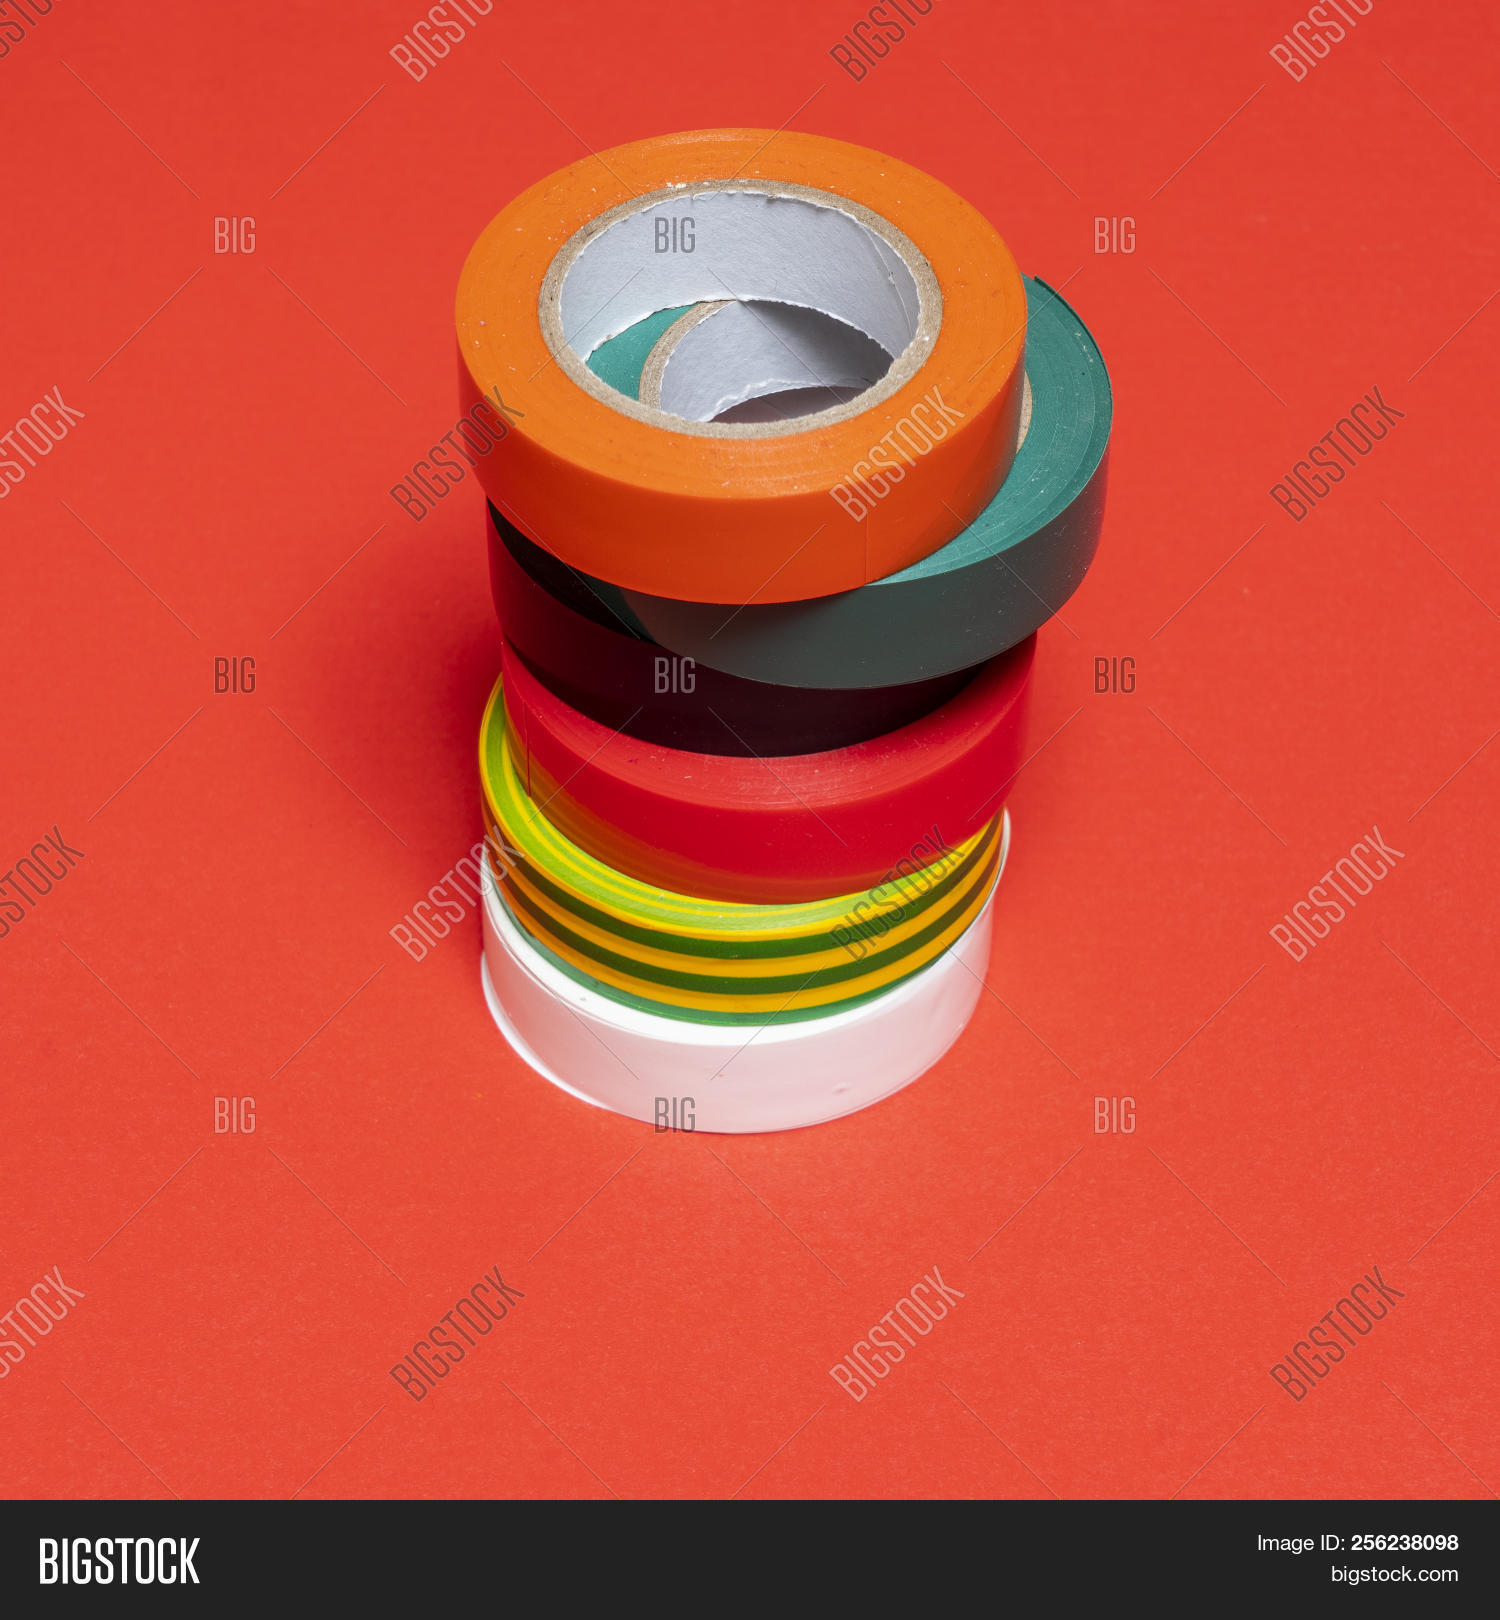 some rolls colored image photo free trial bigstock